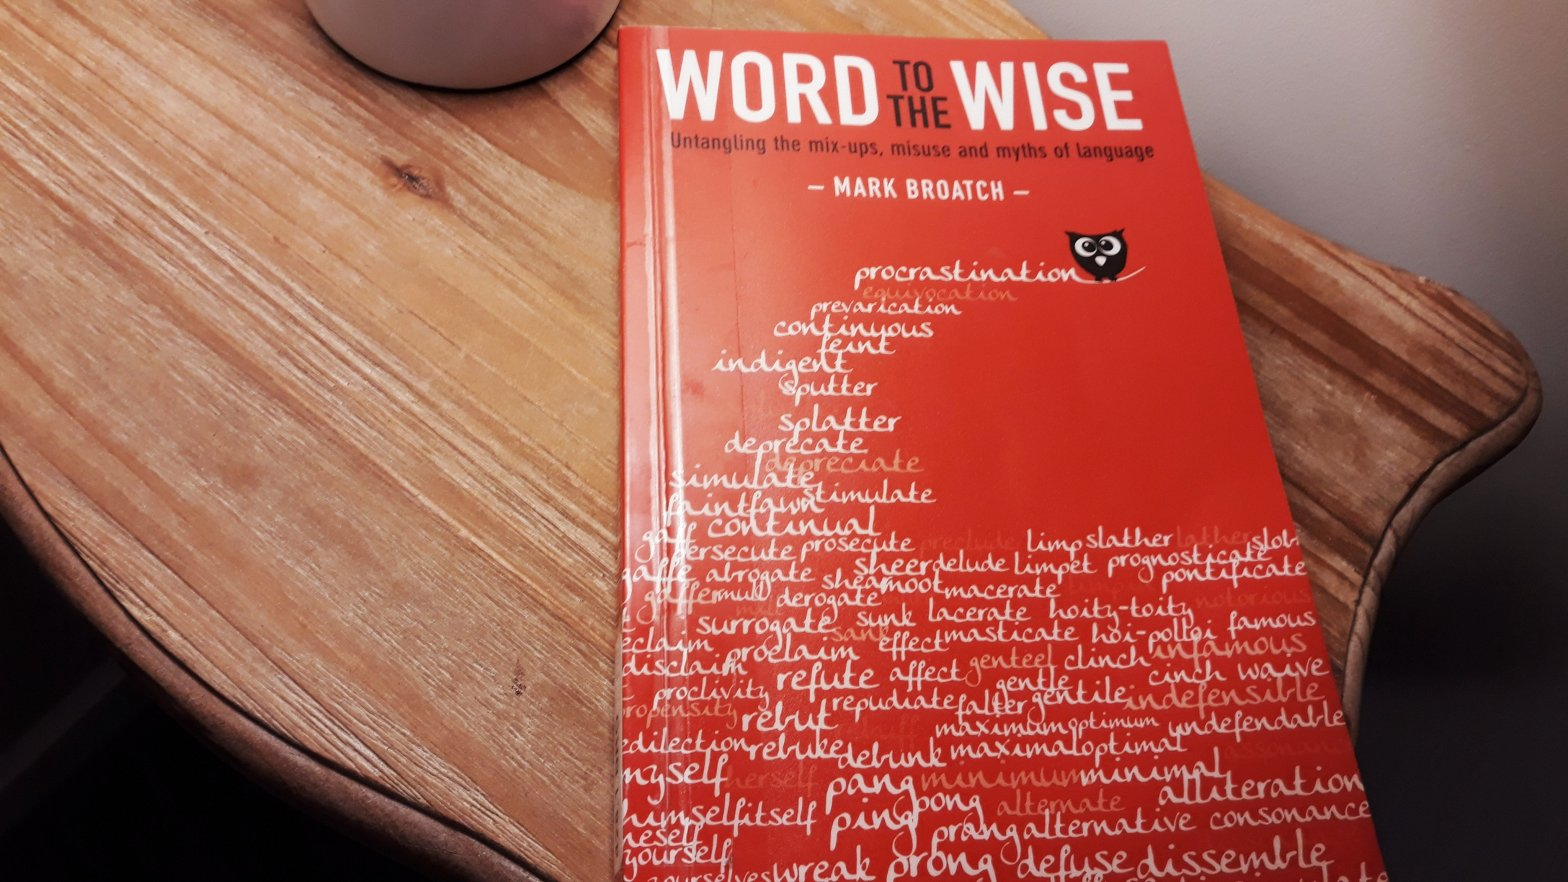 Book Review – Word to the Wise by Mark Broatch